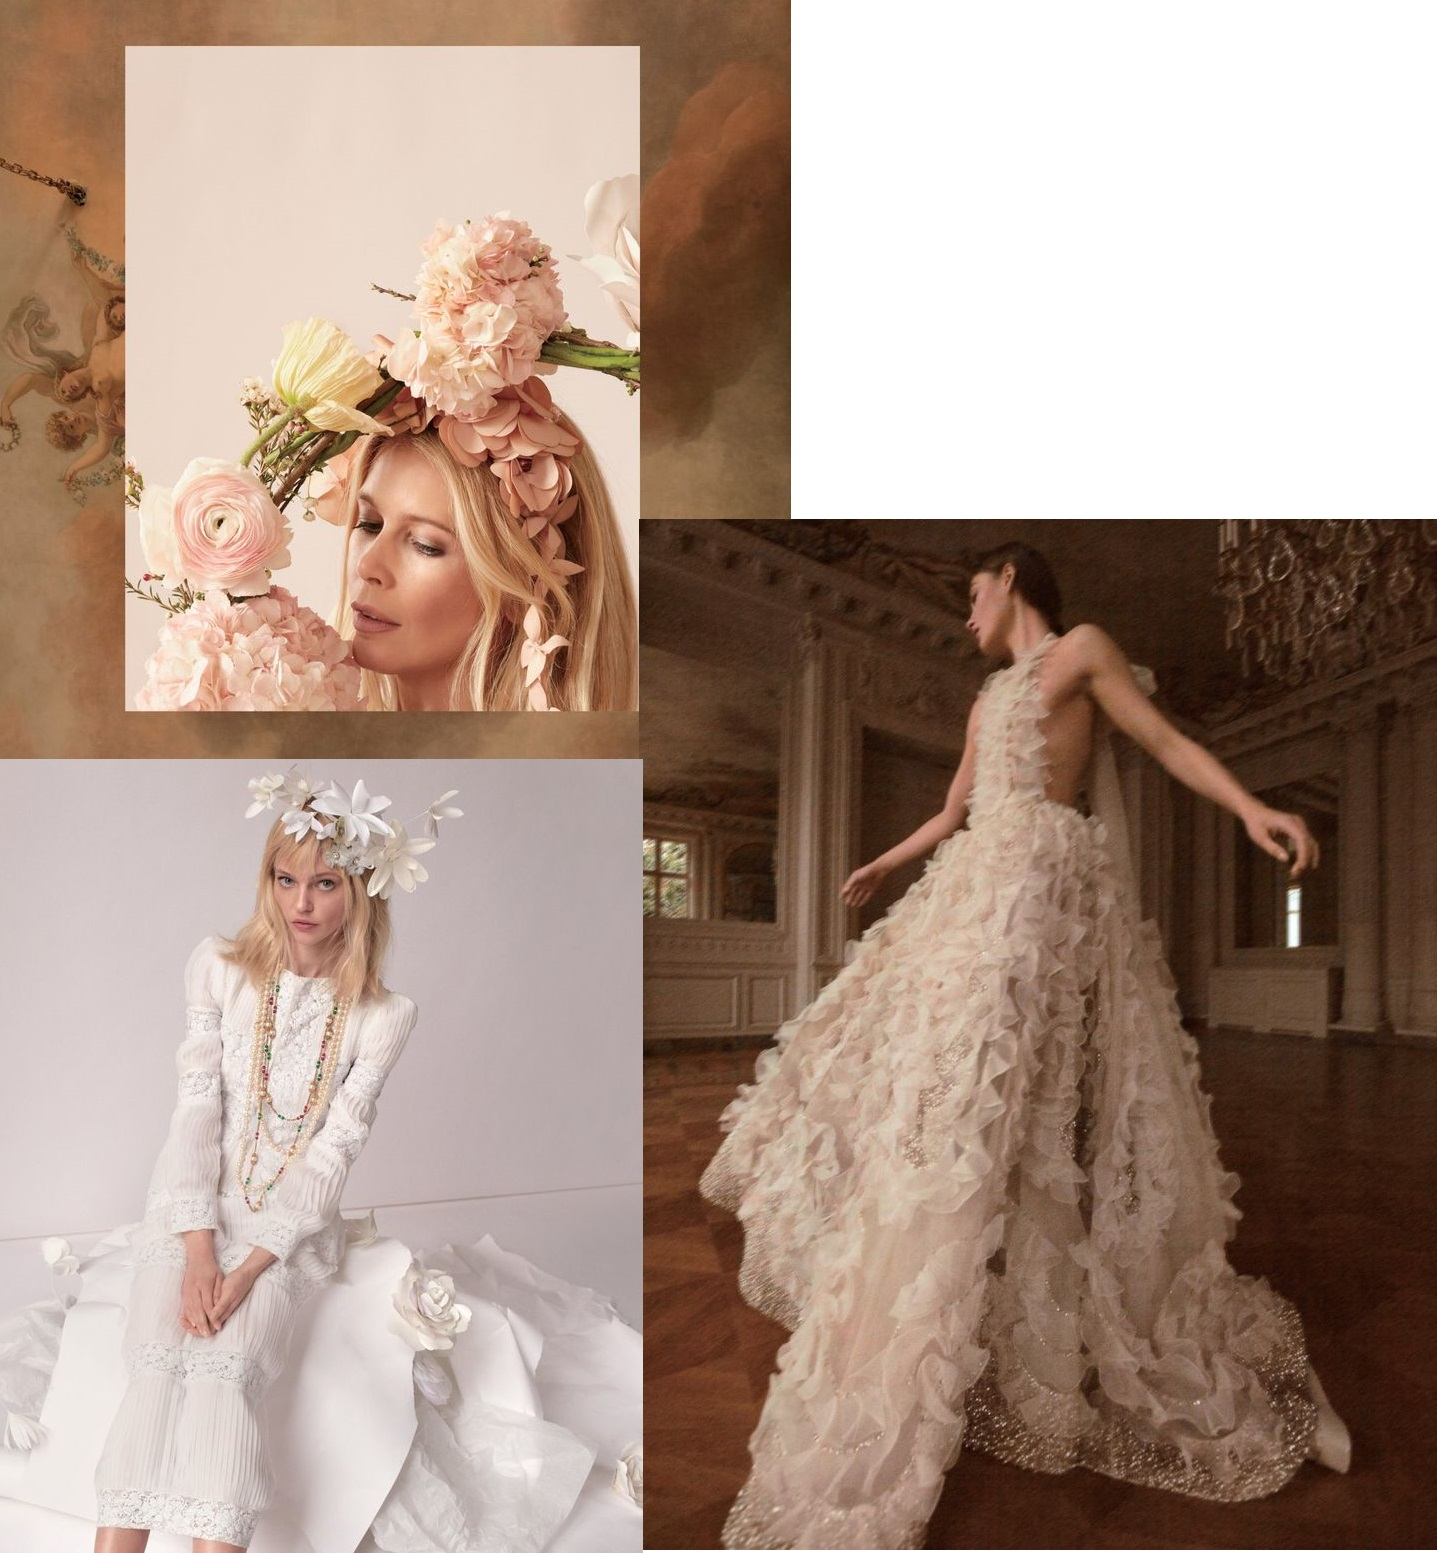 Camilla-Akrans-Spring-Couture-Vogue-China-trio.jpg